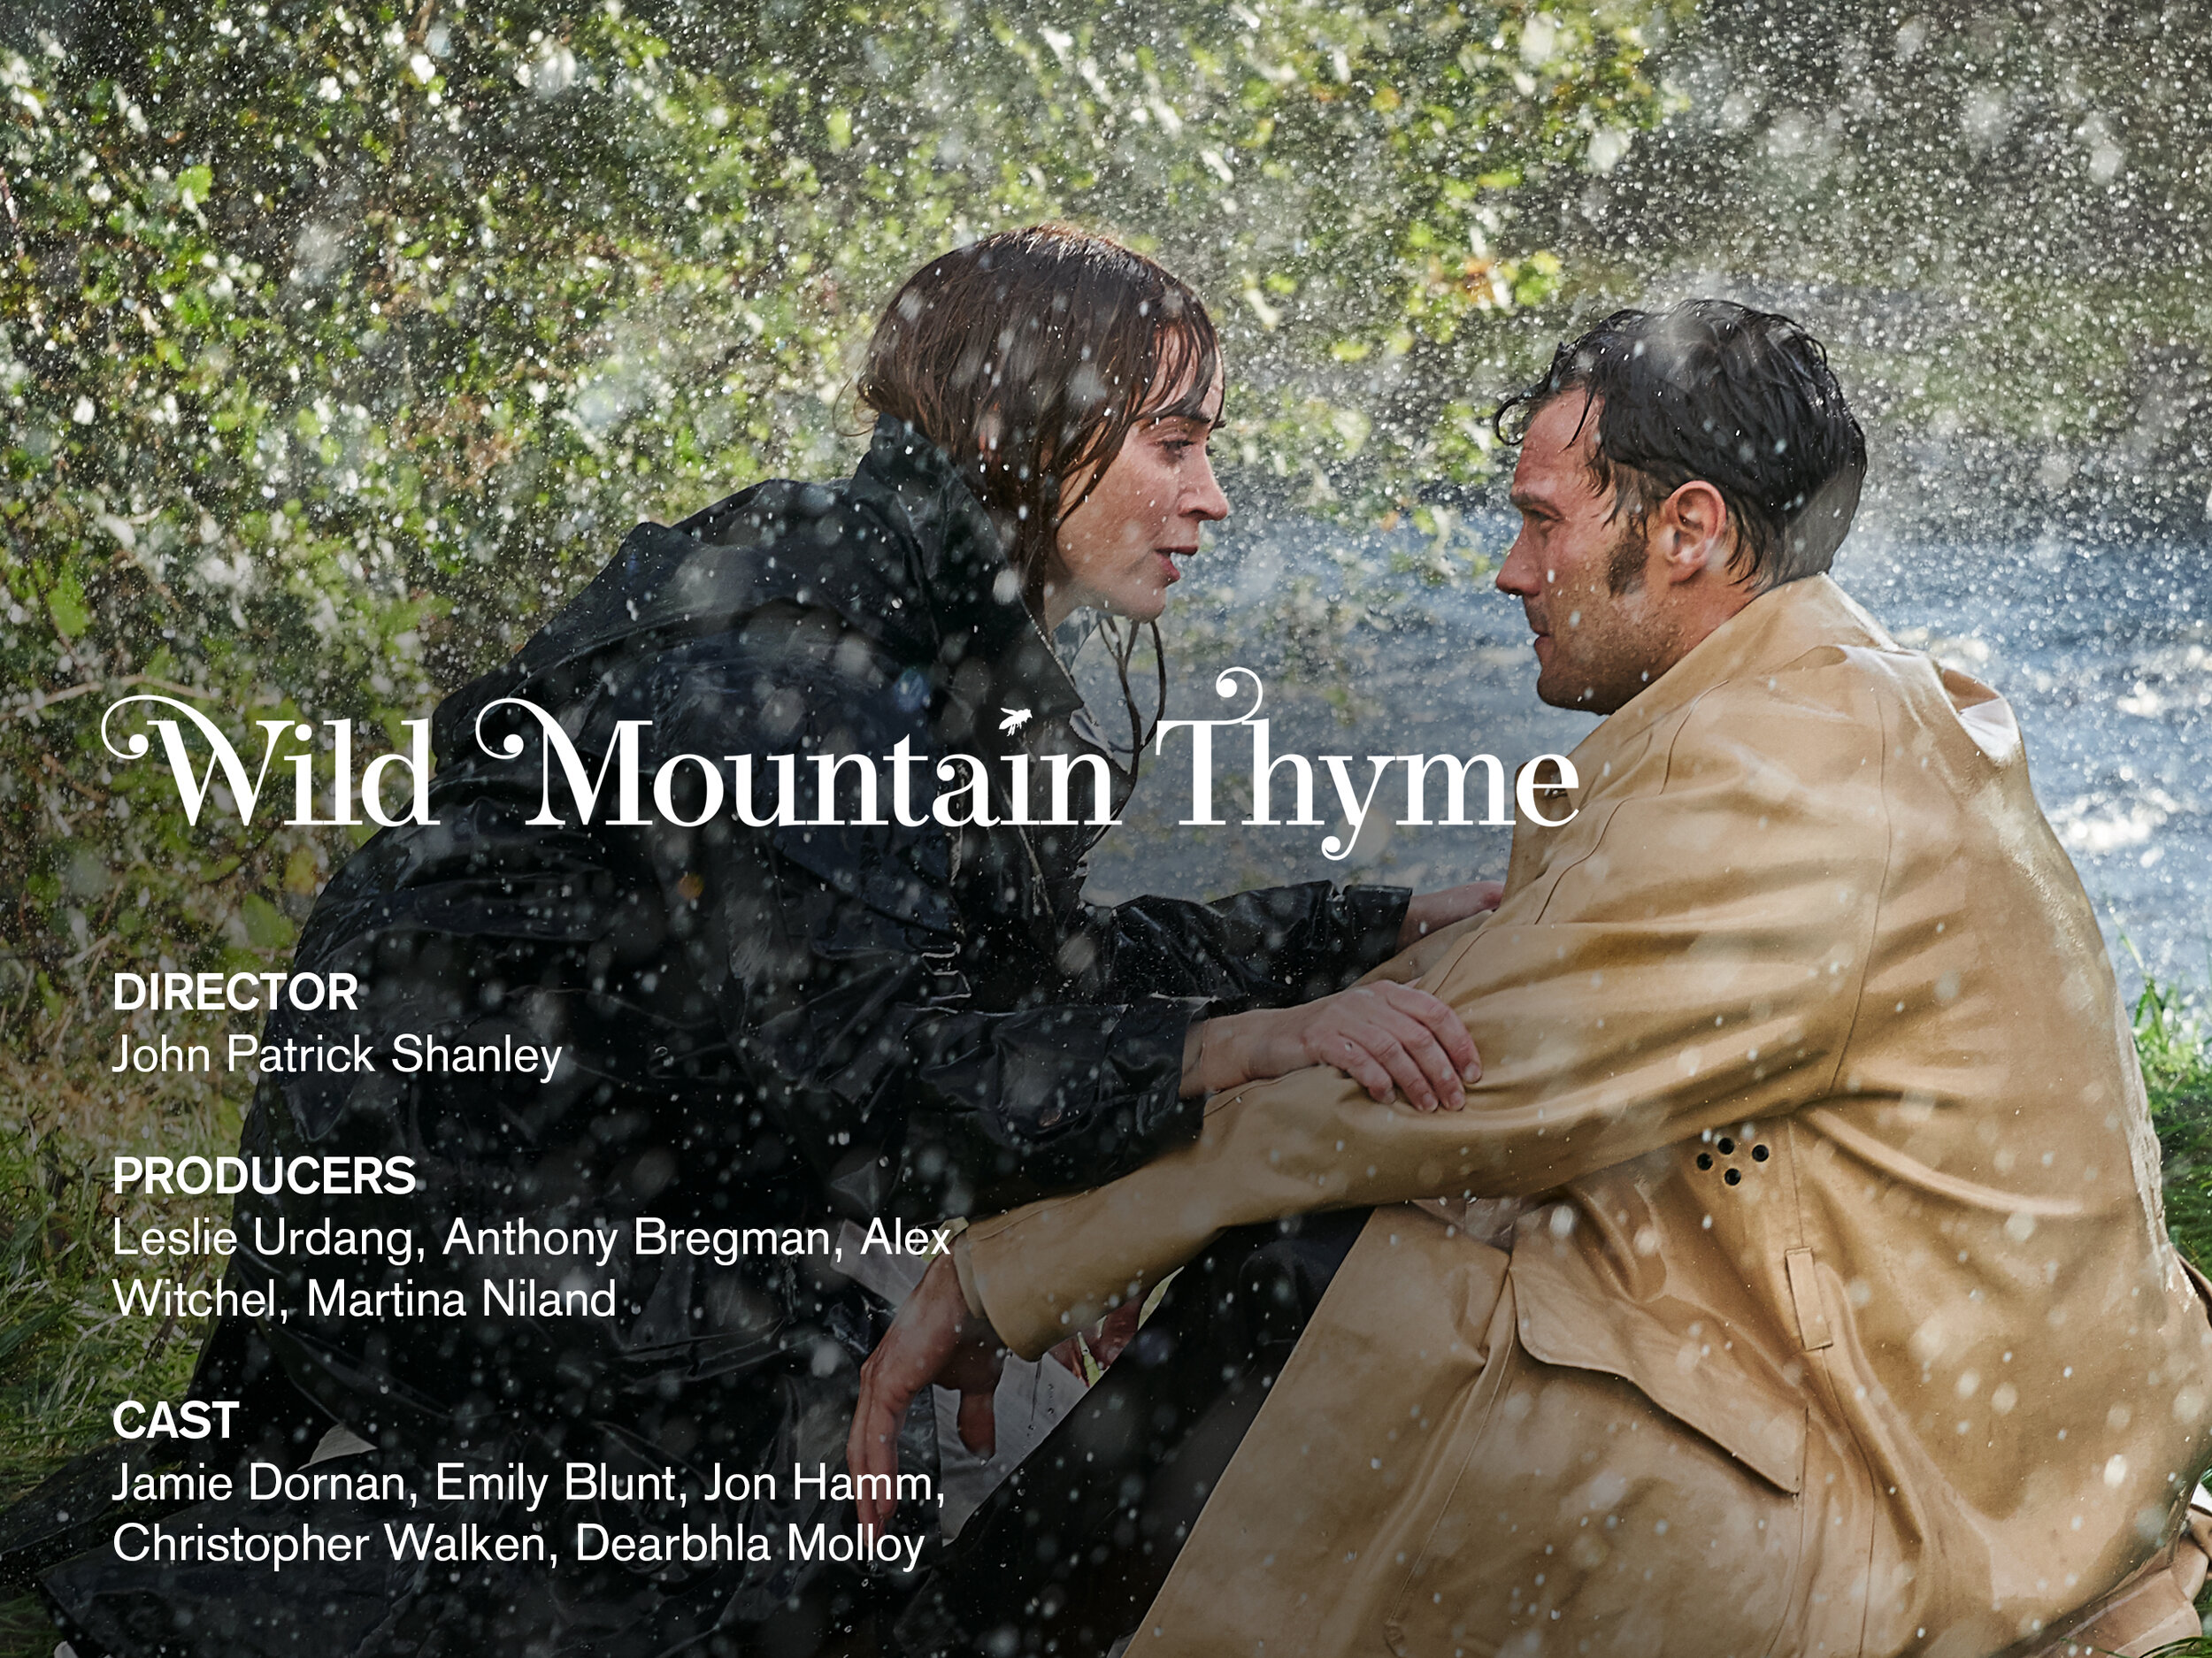 Wild Mountain Thyme Hanway Films